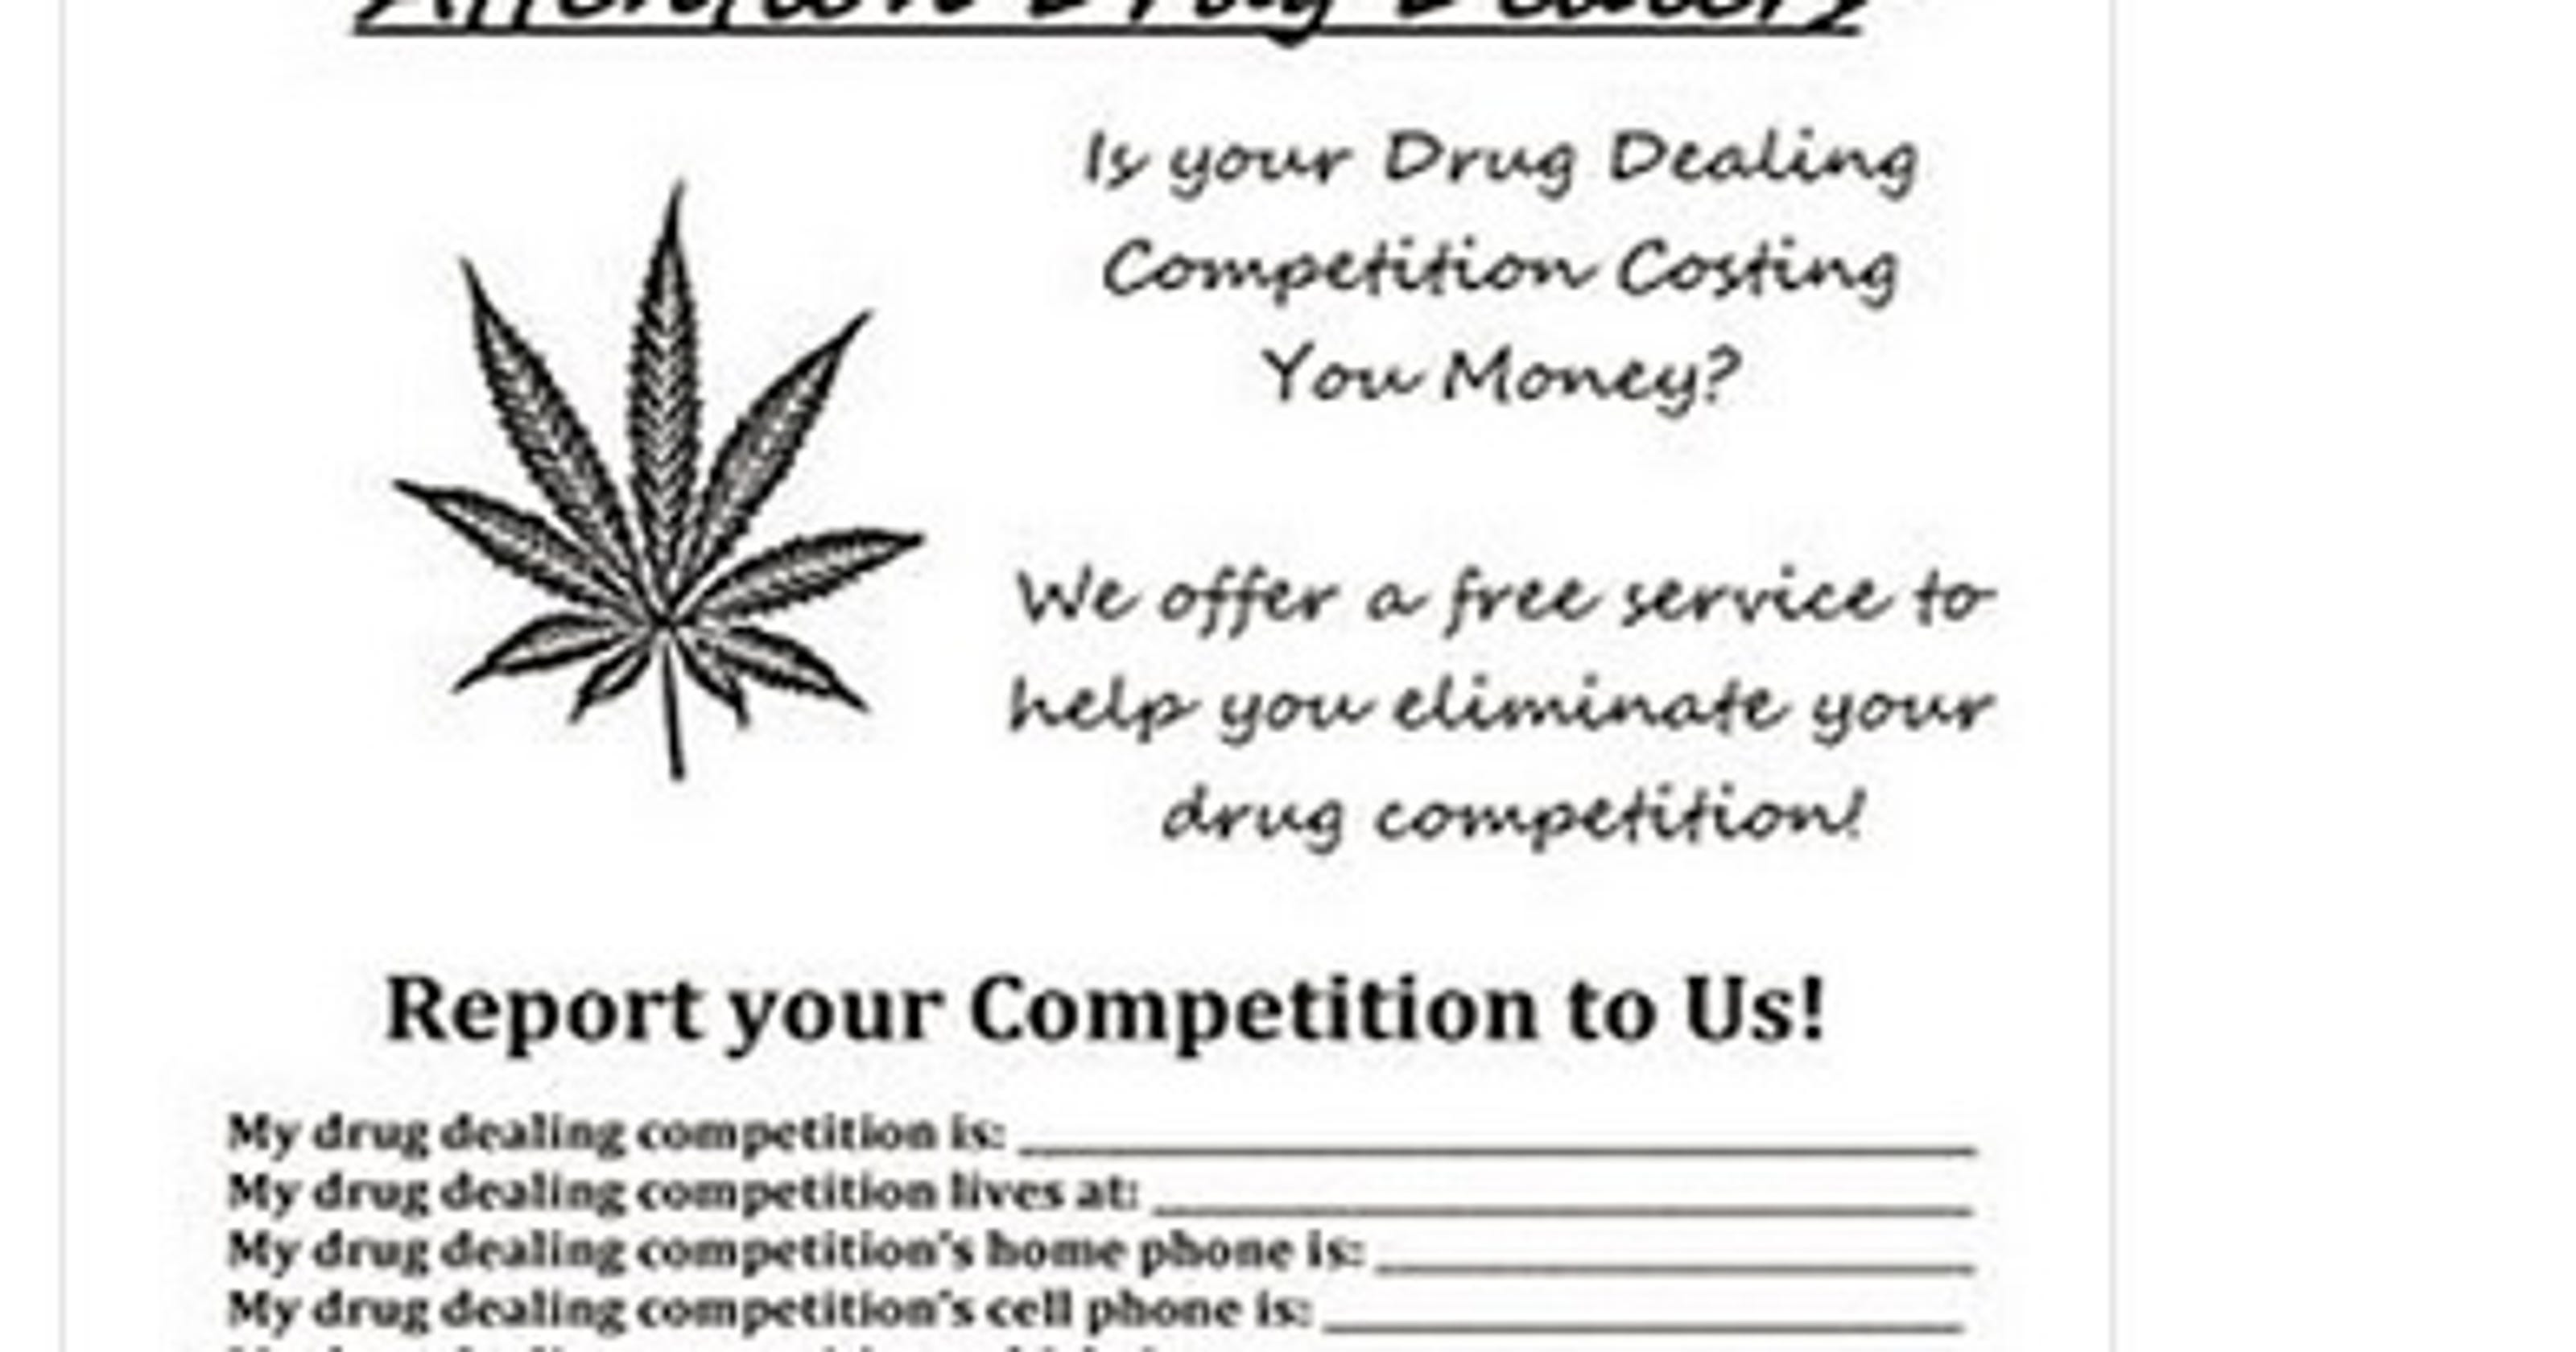 Sheriff's office asks drug dealers to turn in their rivals